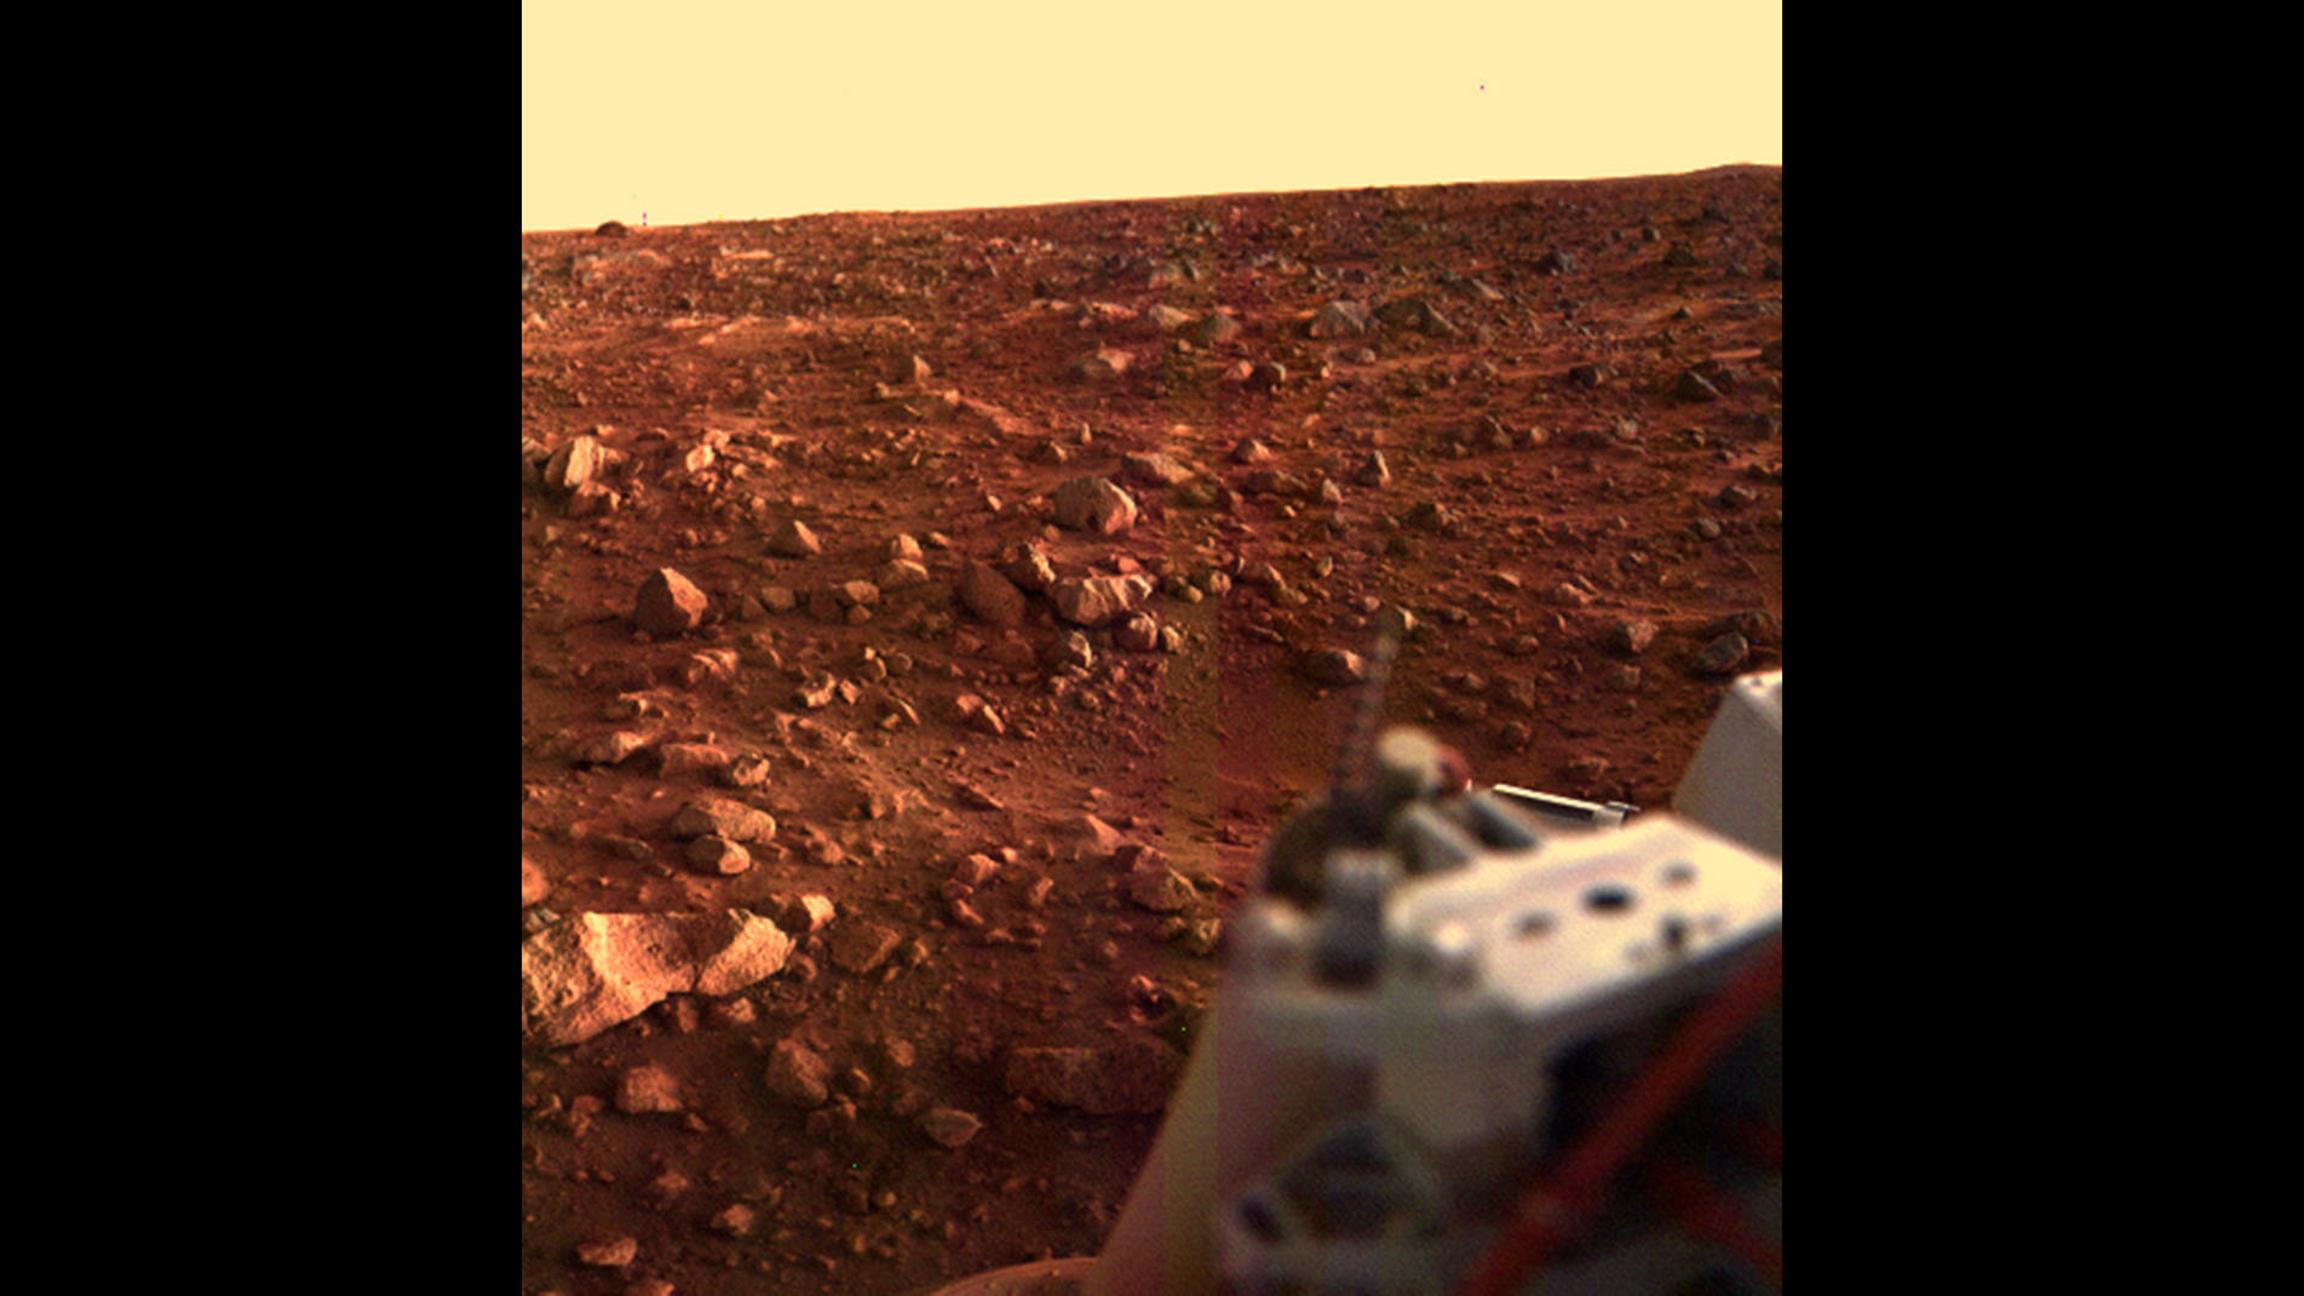 an analysis of a surface exploration of mars The mars reconnaissance orbiter (mro) is a multipurpose spacecraft designed to conduct reconnaissance and exploration of mars from orbit the $720 million usd spacecraft was built by lockheed martin under the supervision of the jet propulsion laboratory , launched august 12, 2005, and entered mars orbit on march 10, 2006.